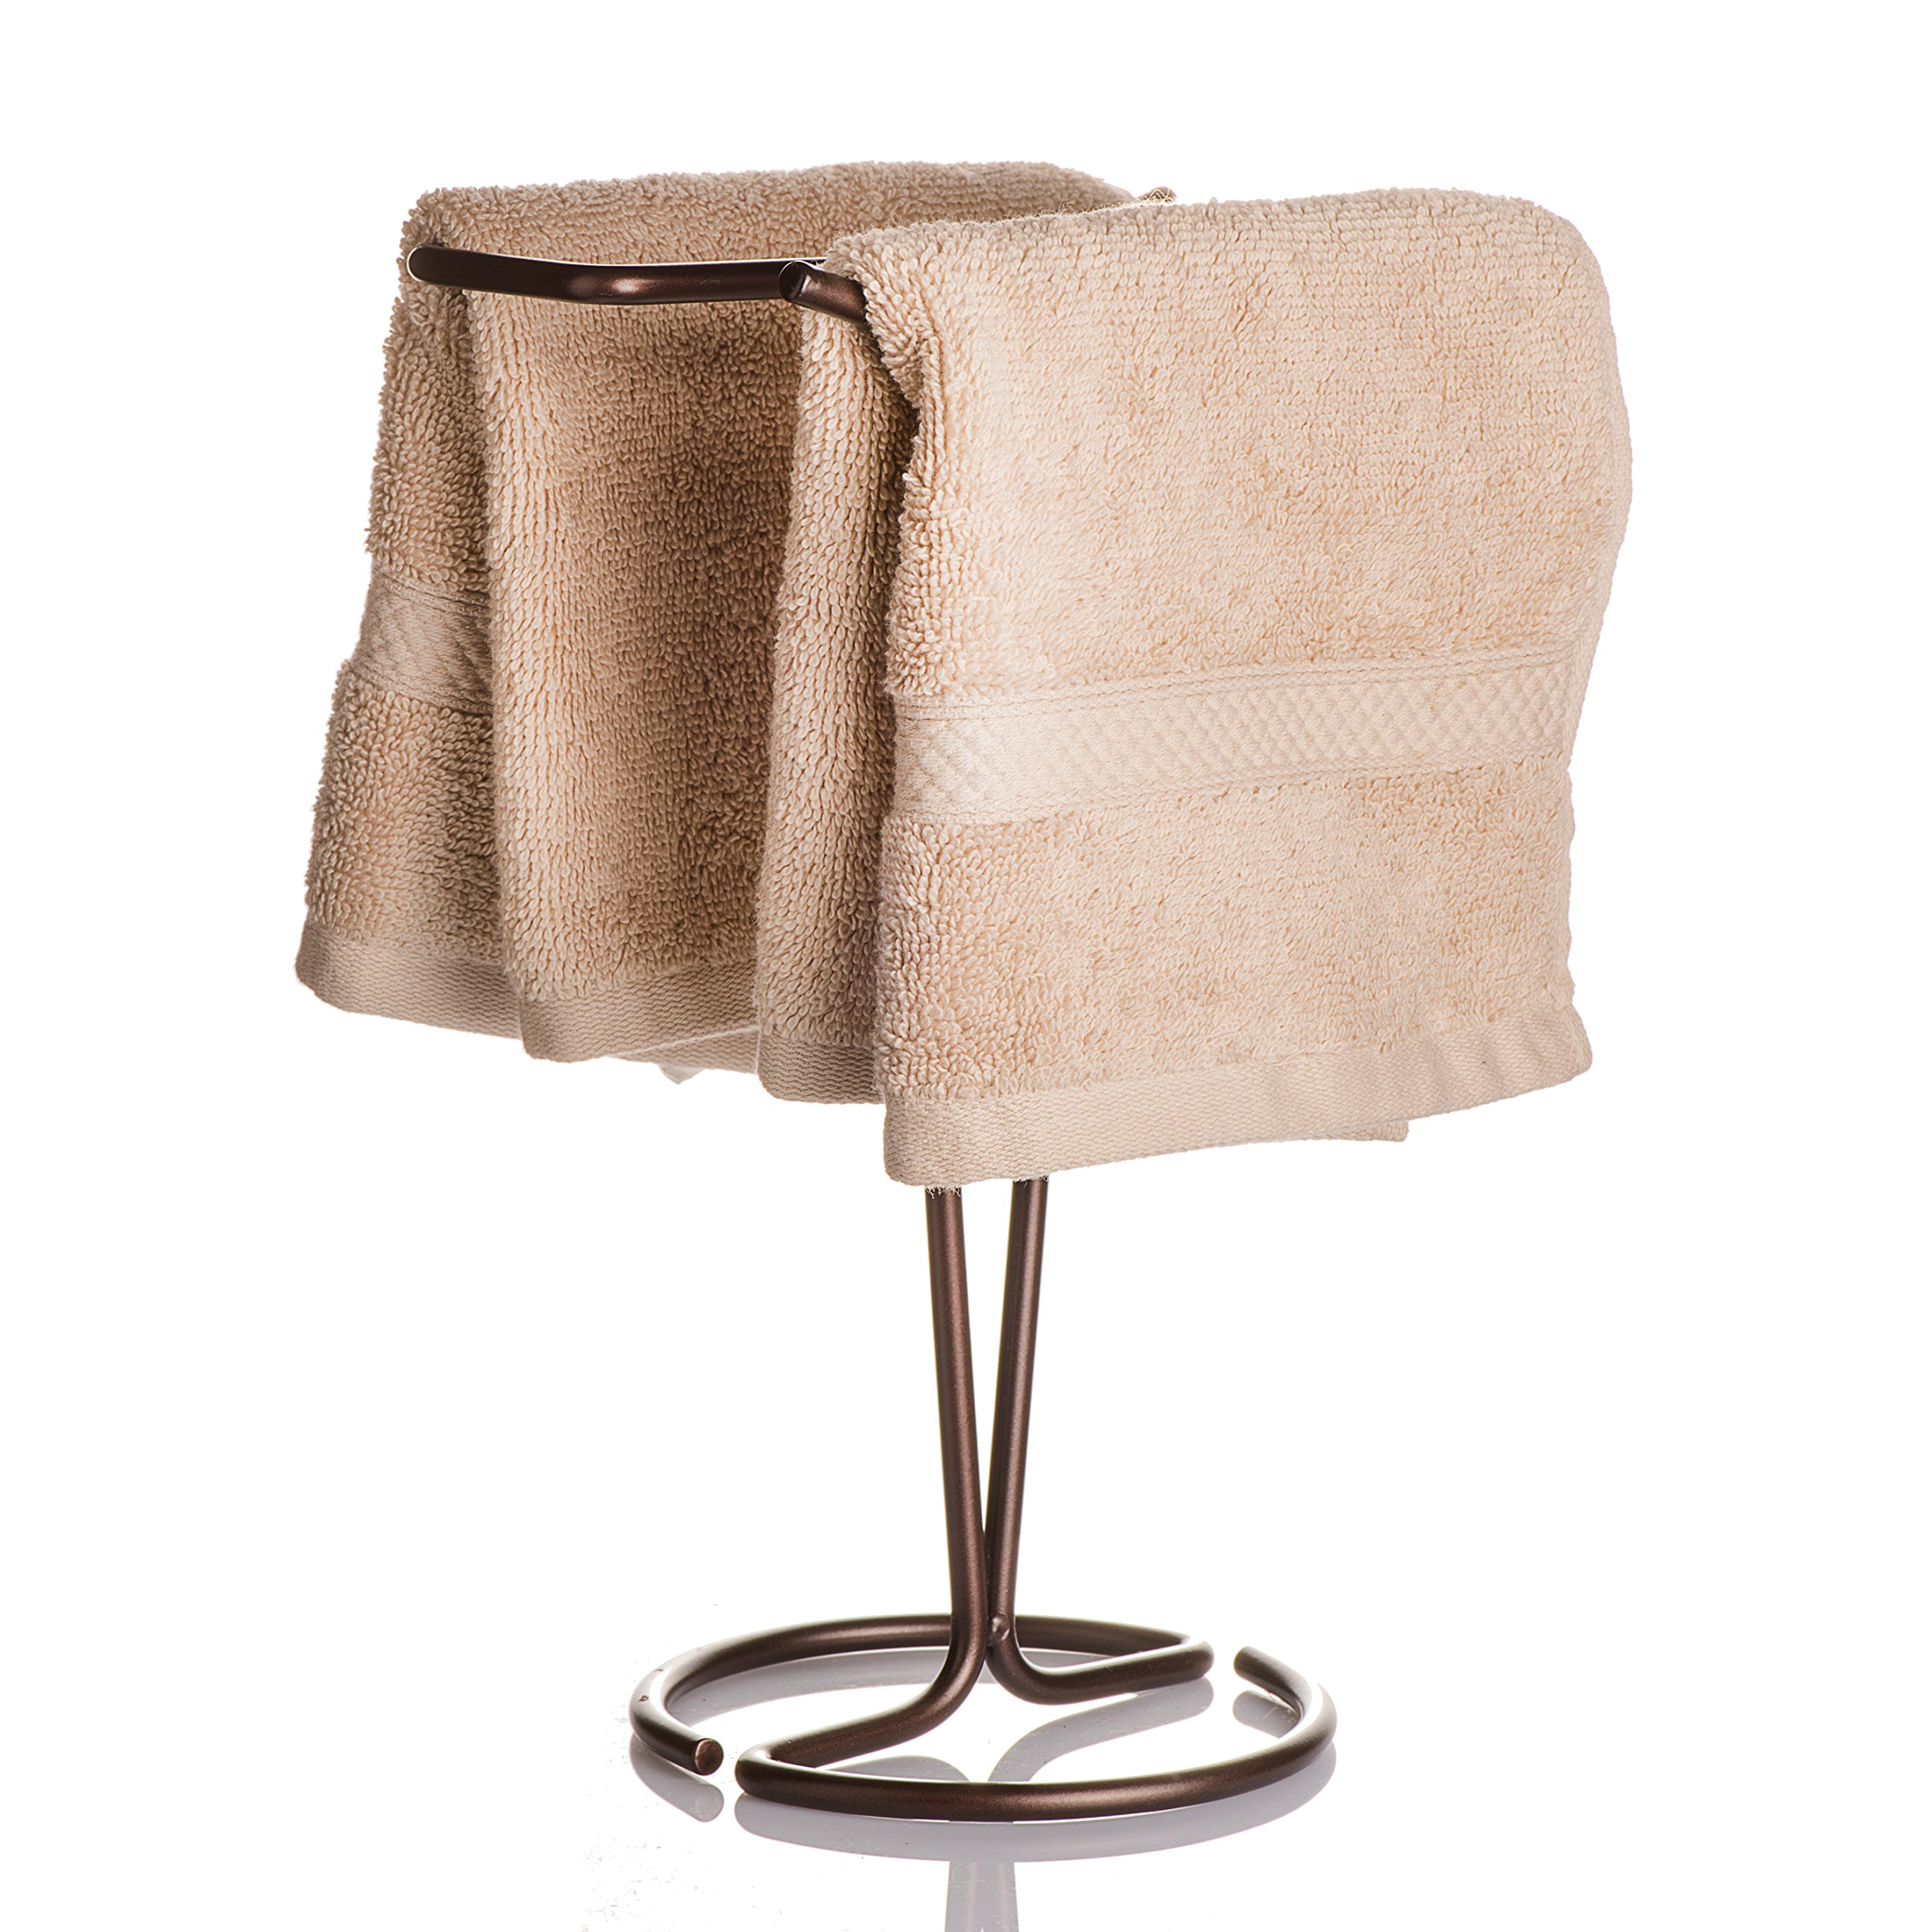 AMG and Enchante Accessories, Free Standing Fingertip Hand Towel Bar Holder Tree Rack, TT100003 ORB, Oil Rubbed Bronze